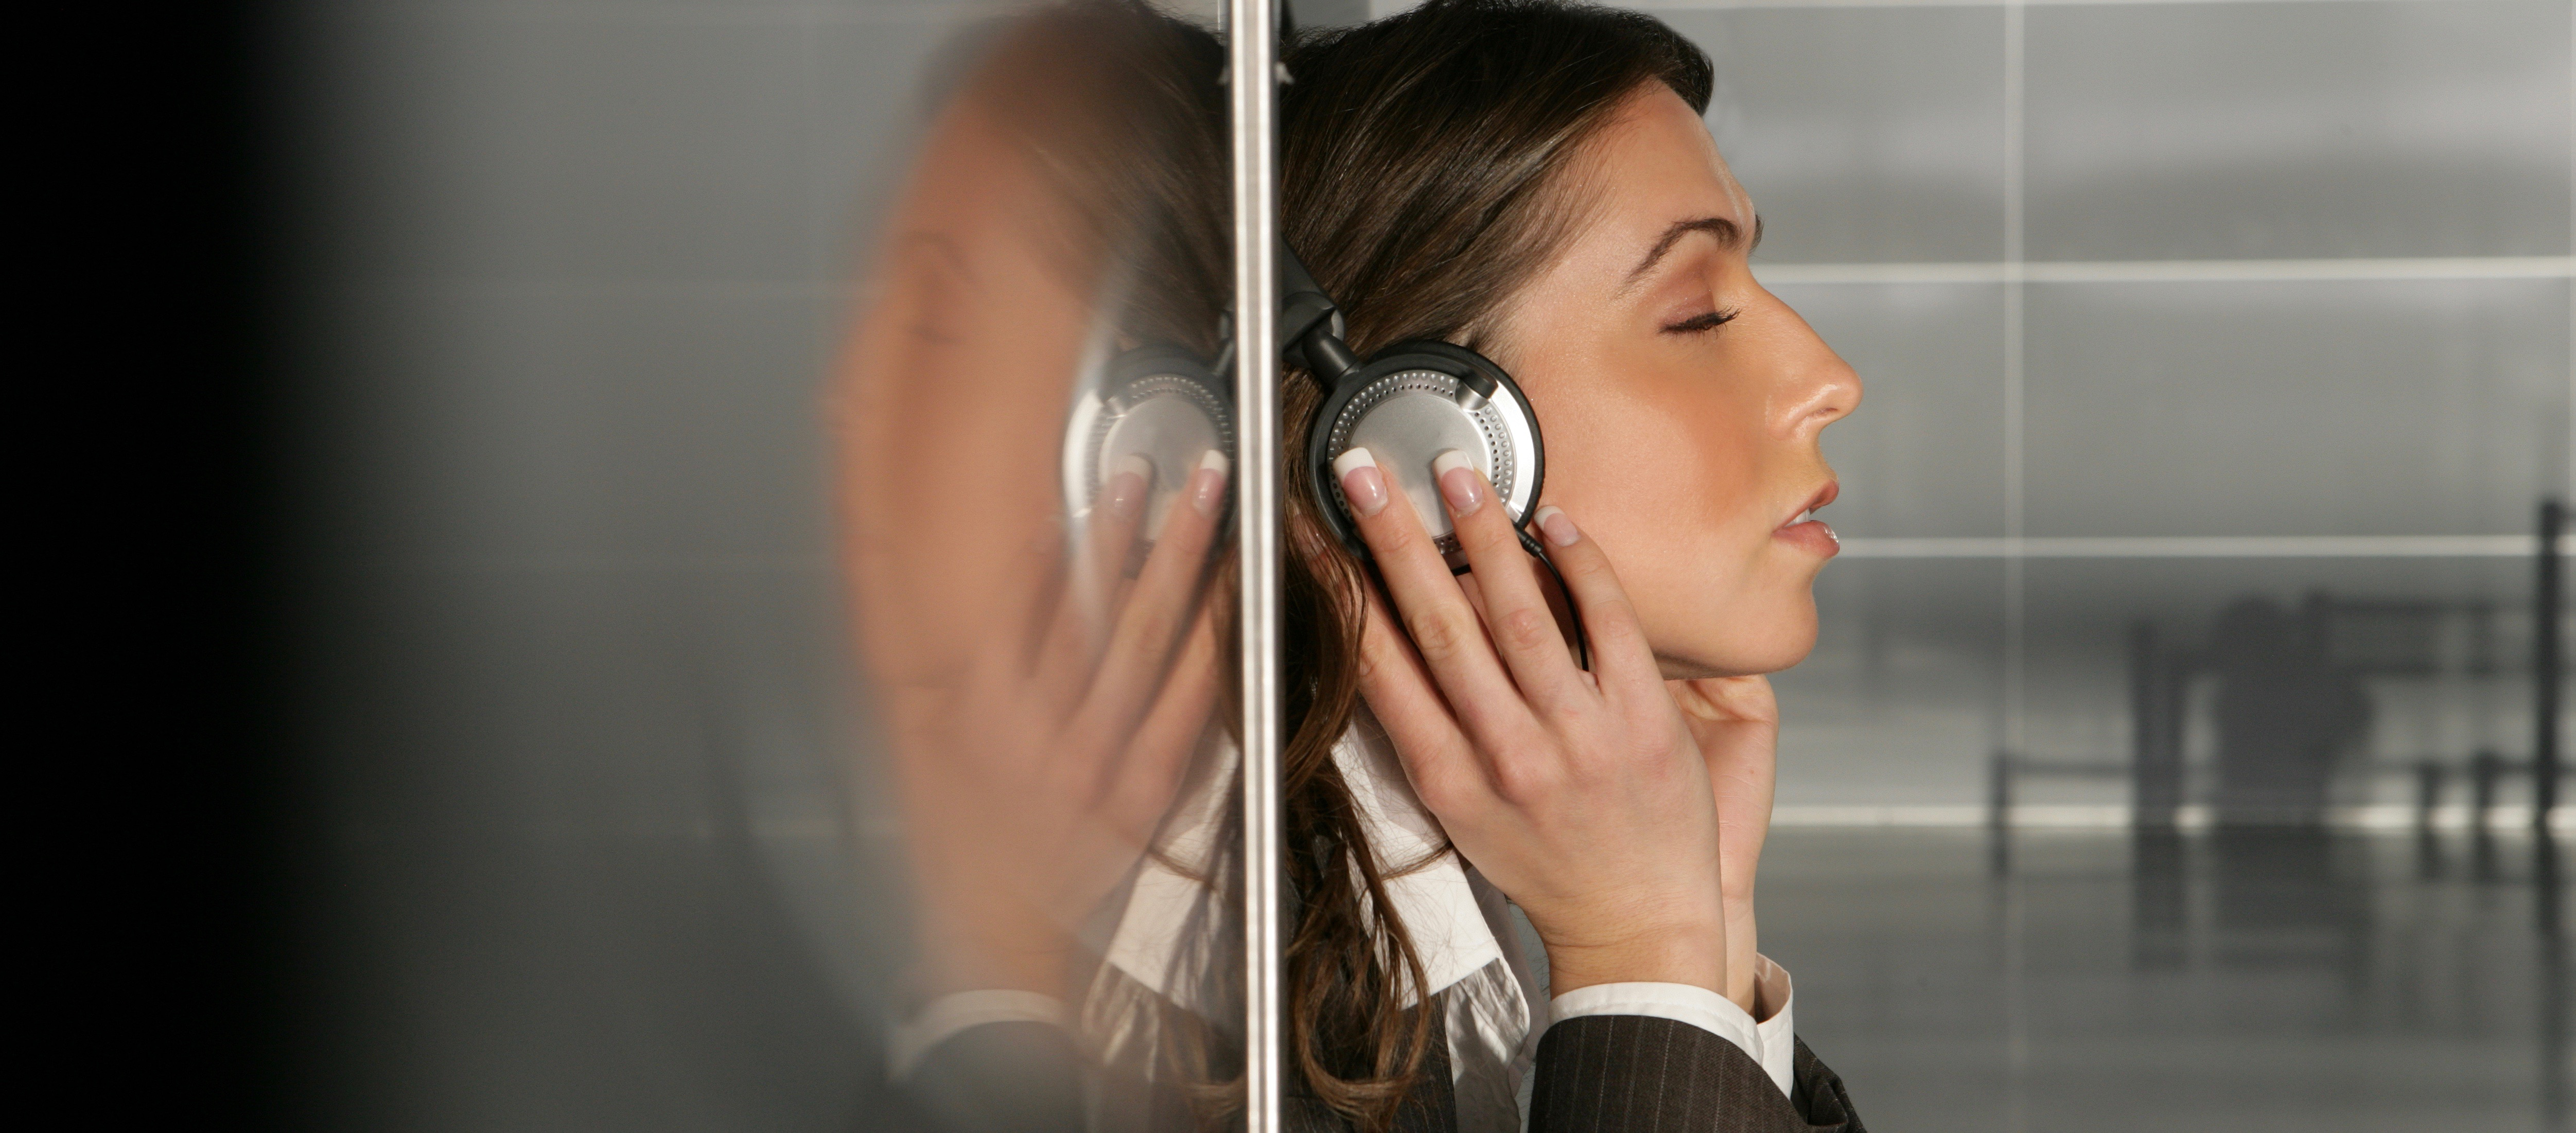 How to Get People to Actually Listen to You